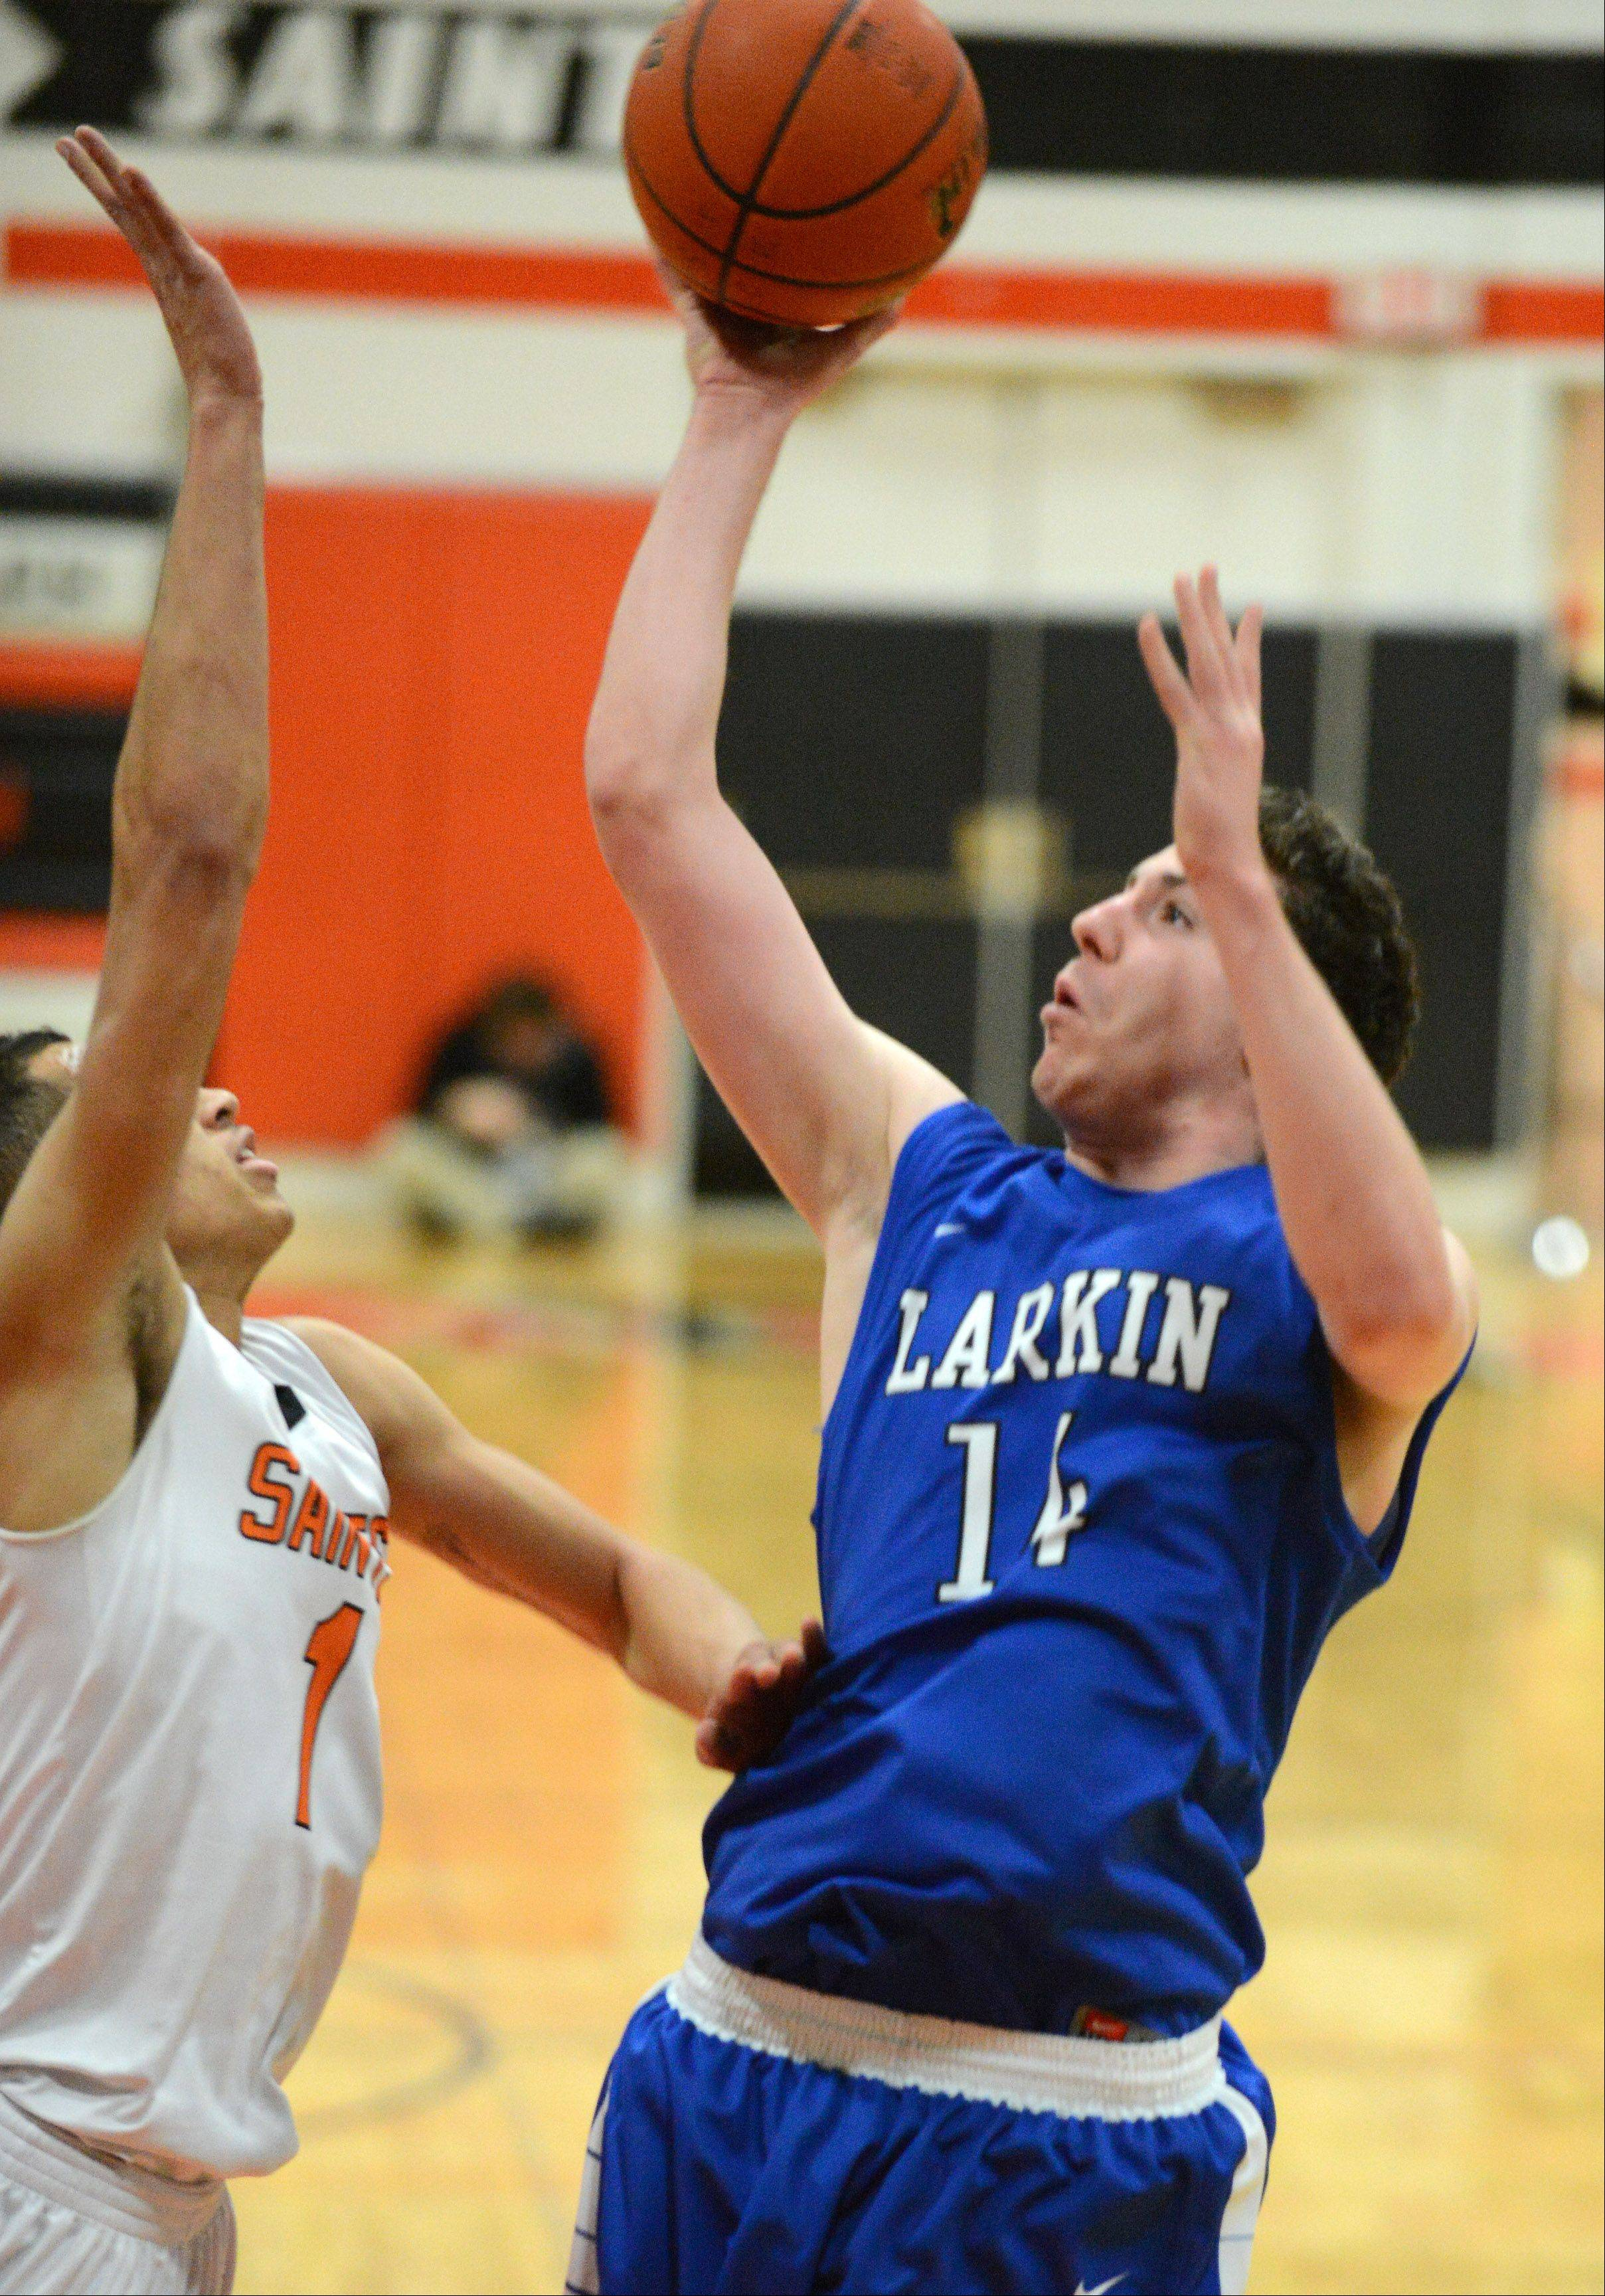 Larkin's Andrew Jones (14) shoots over St. Charles East's AJ Washington (1) during Thursday's game in St. Charles.